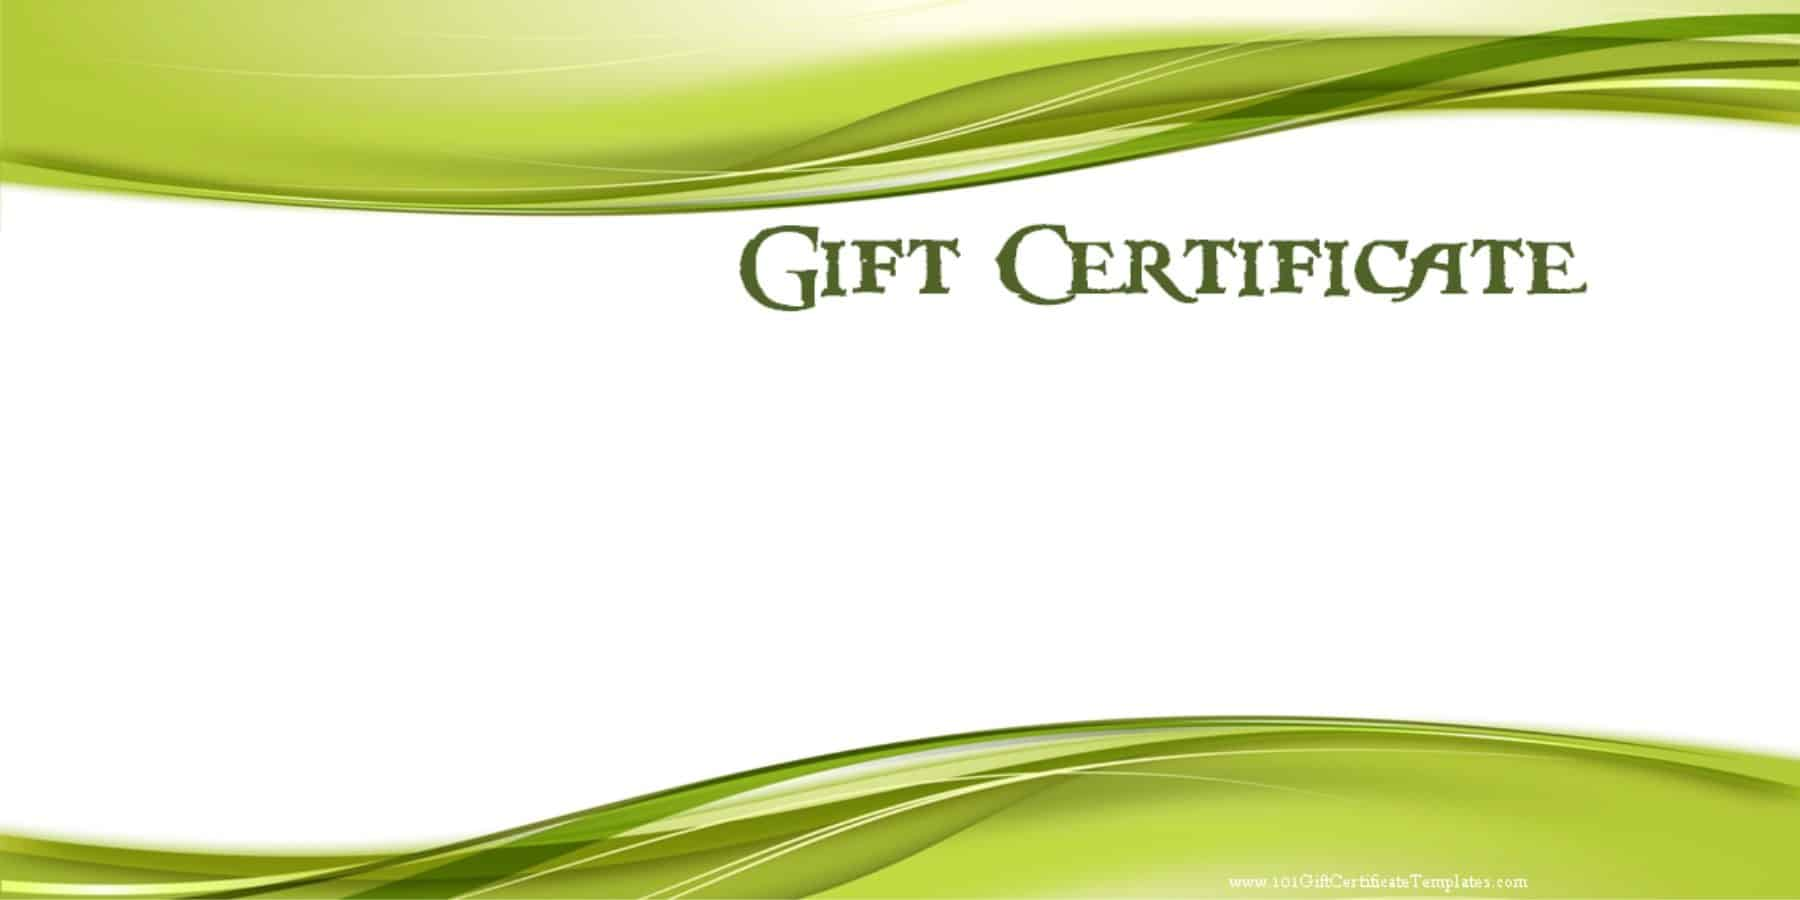 Printable gift certificate templates for Free customizable gift certificate template